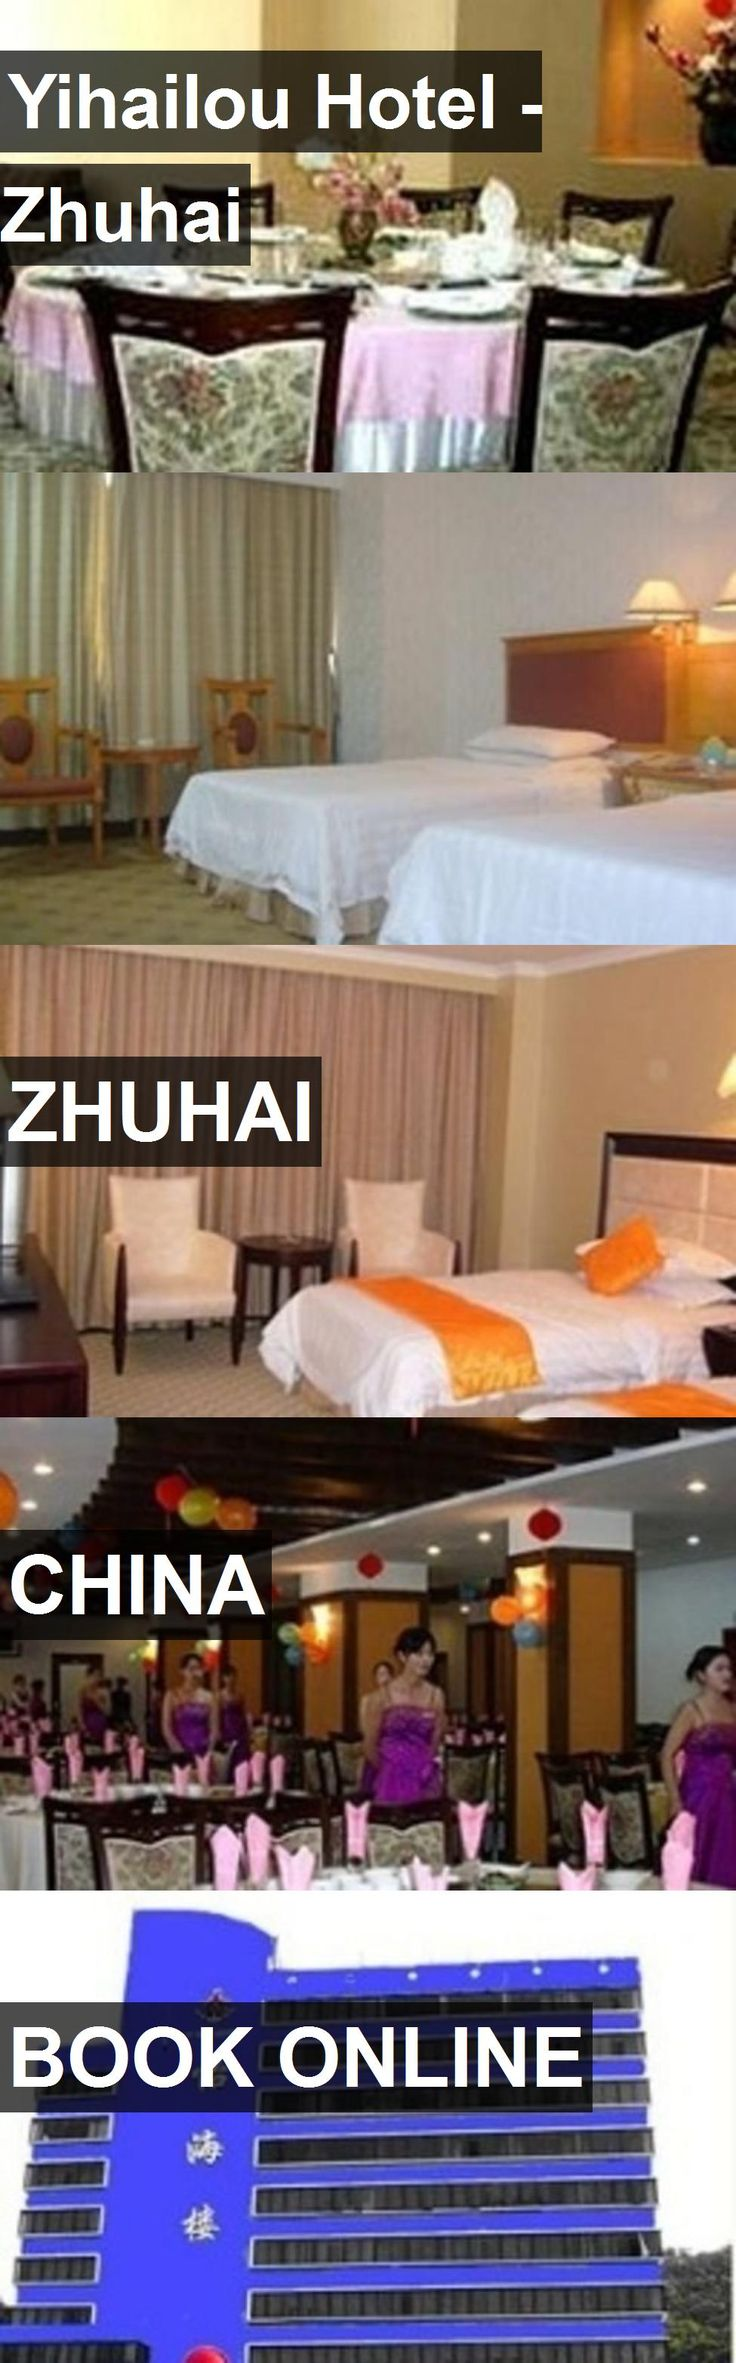 Hotel Yihailou Hotel - Zhuhai in Zhuhai, China. For more information, photos, reviews and best prices please follow the link. #China #Zhuhai #YihailouHotel-Zhuhai #hotel #travel #vacation